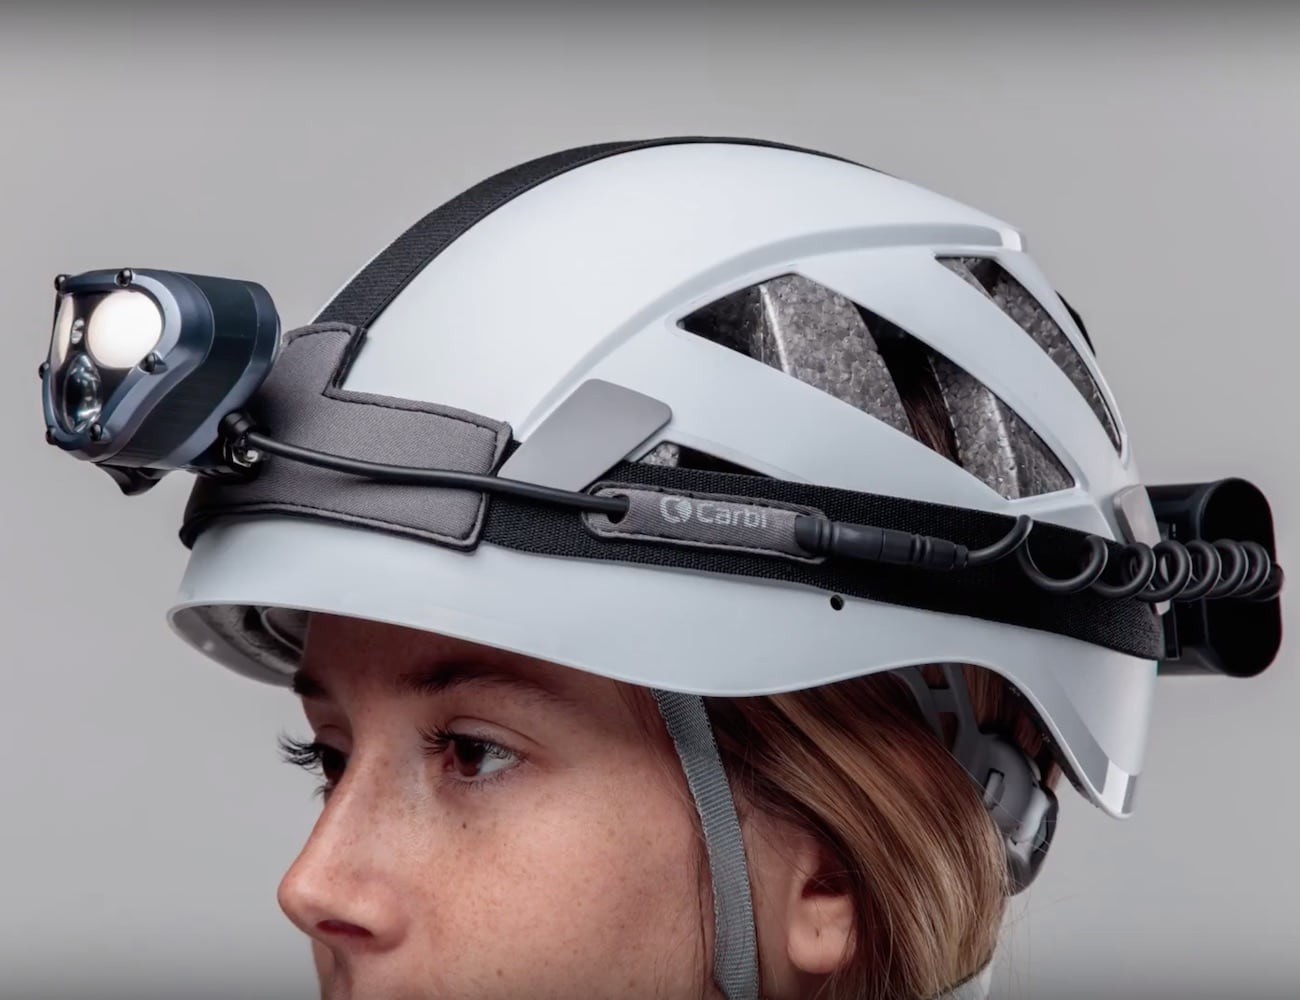 Carbi 1500 Lumen Headlamp lights up any activity without tunnel effect